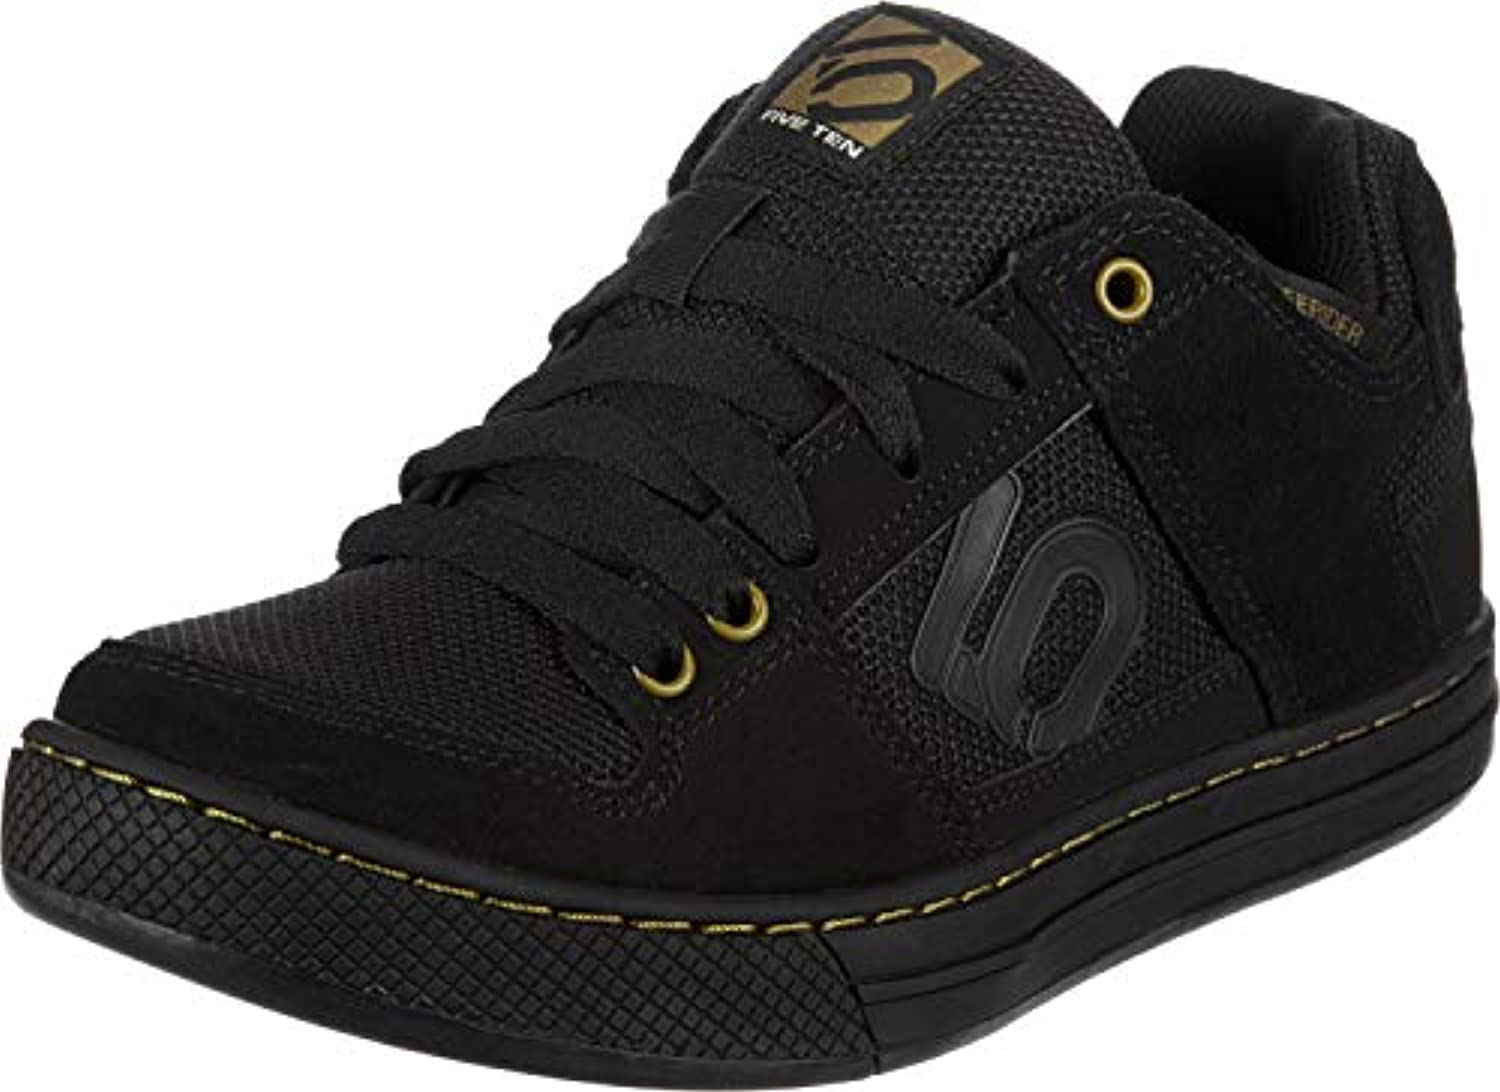 Five Five Five Ten Freerider Scarpe da ciclismo nero | Acquista online